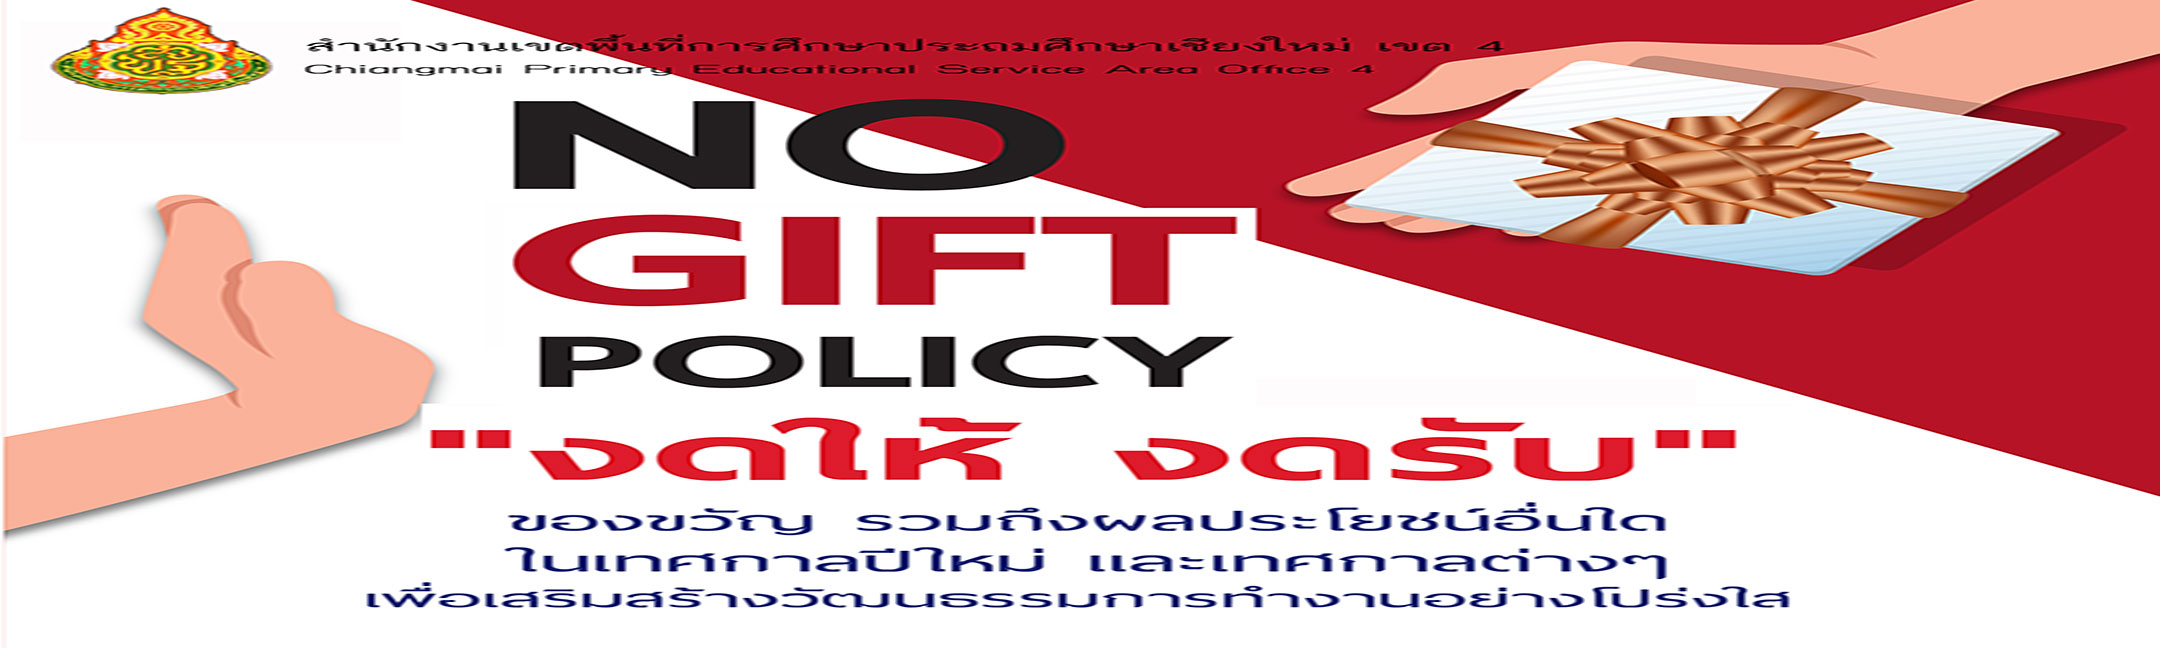 no_gift_policy2160